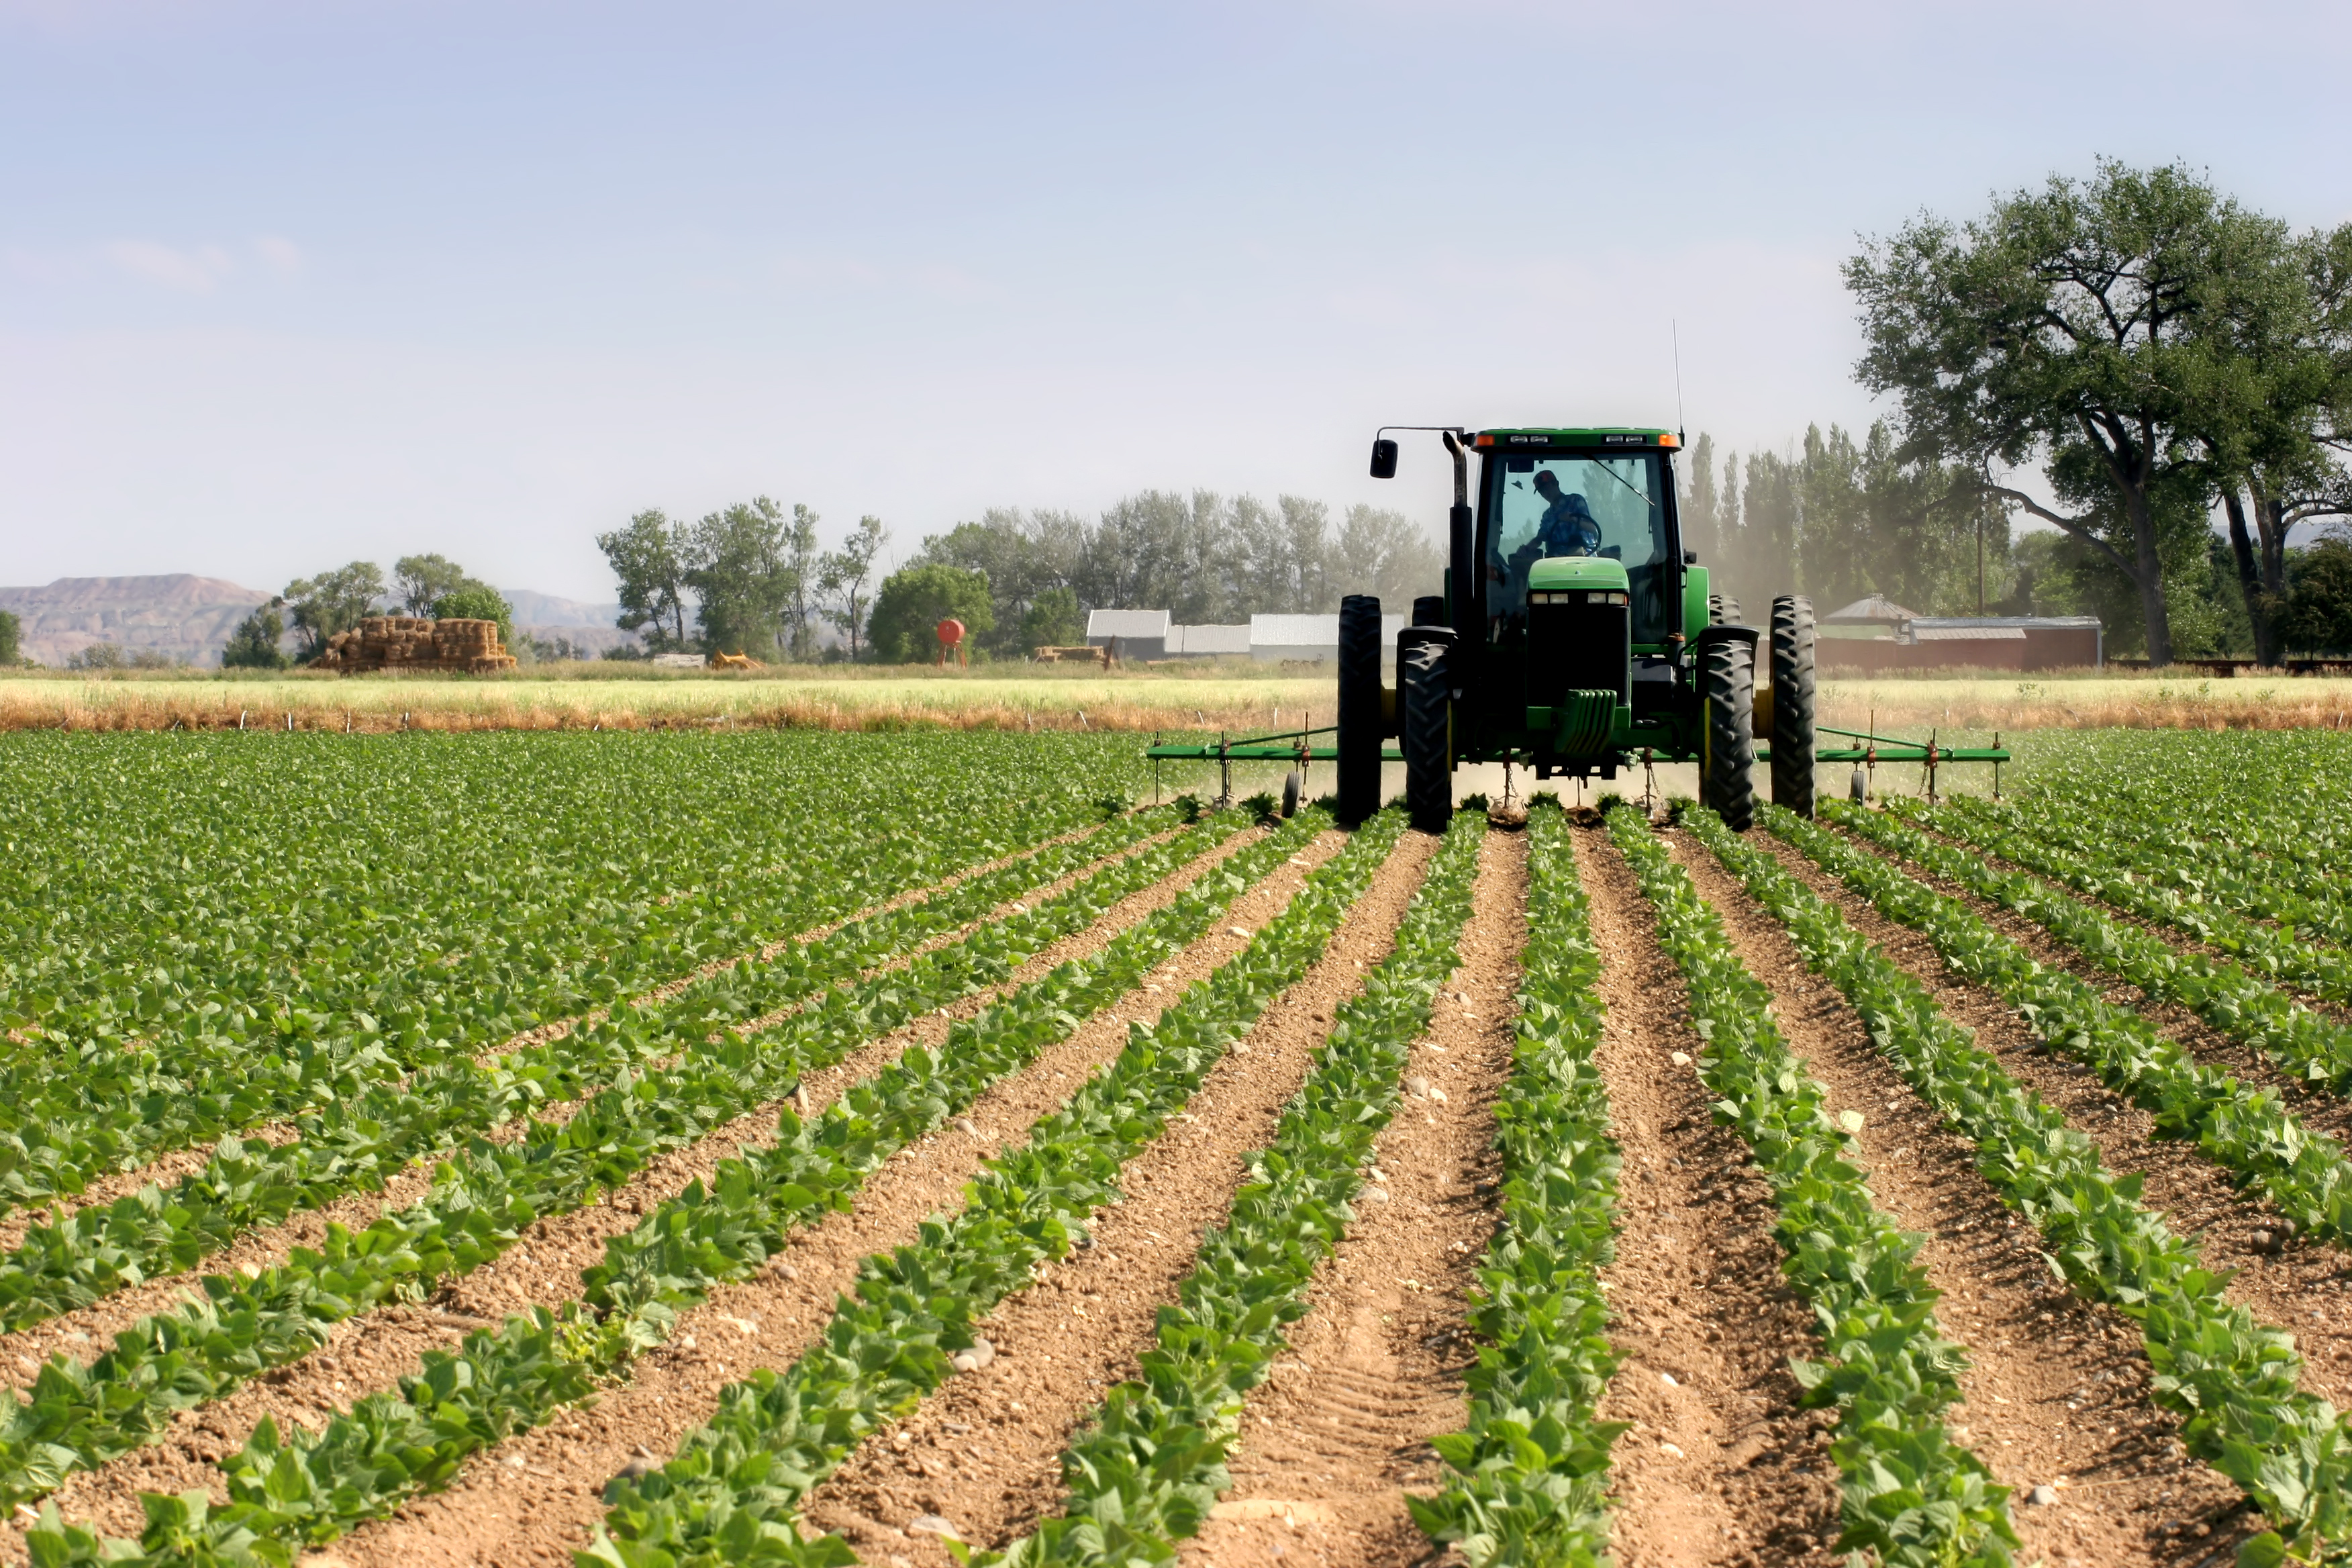 Over 1000 youth quipped on agribusiness skills